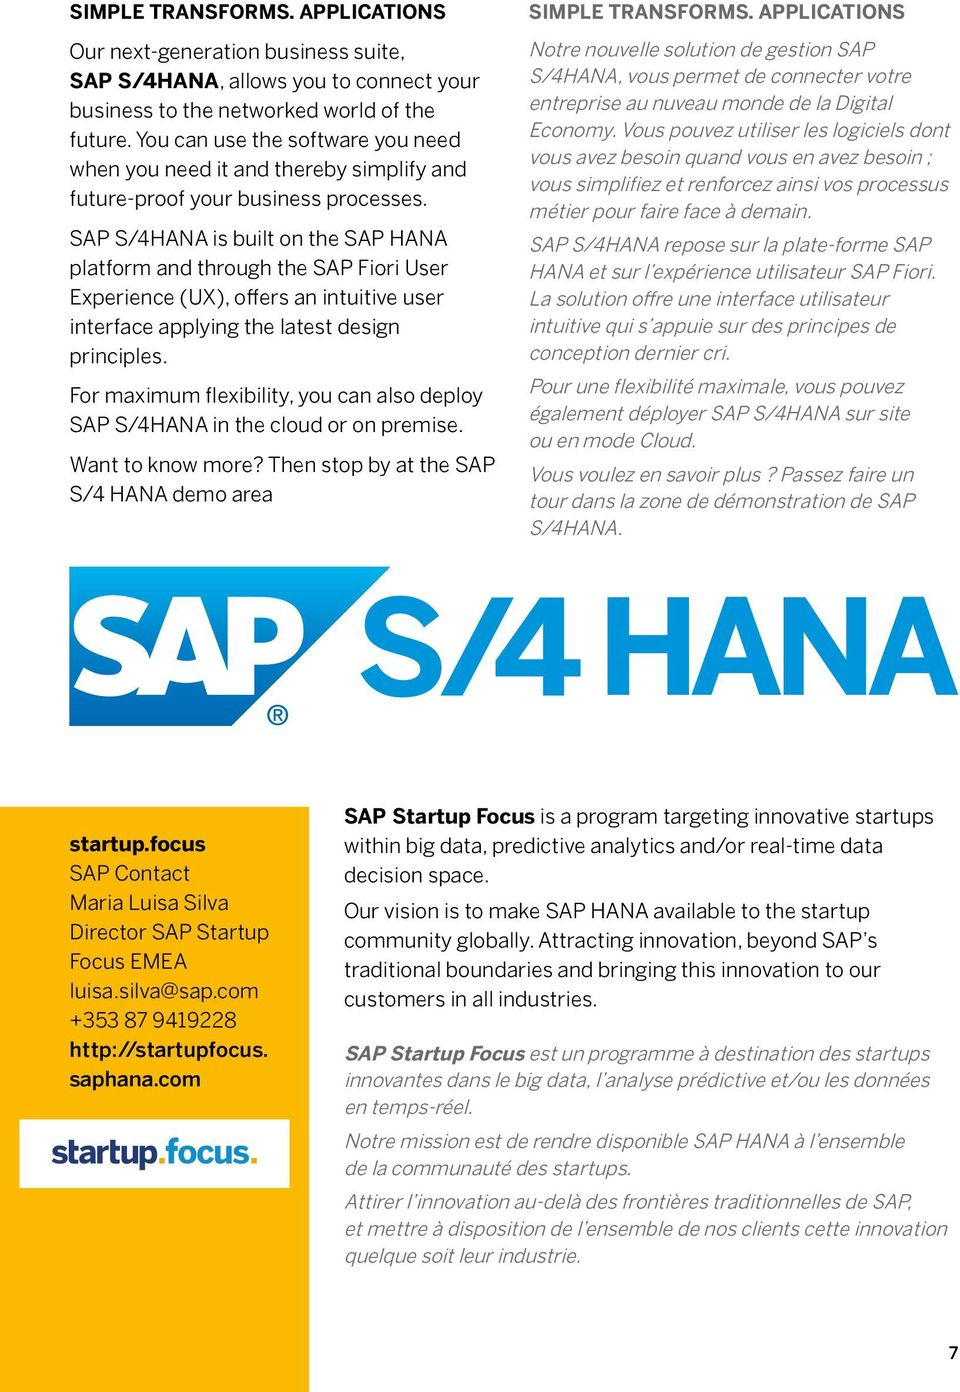 SAP S/4HANA is built on the SAP HANA platform and through the SAP Fiori User Experience (UX), offers an intuitive user interface applying the latest design principles.